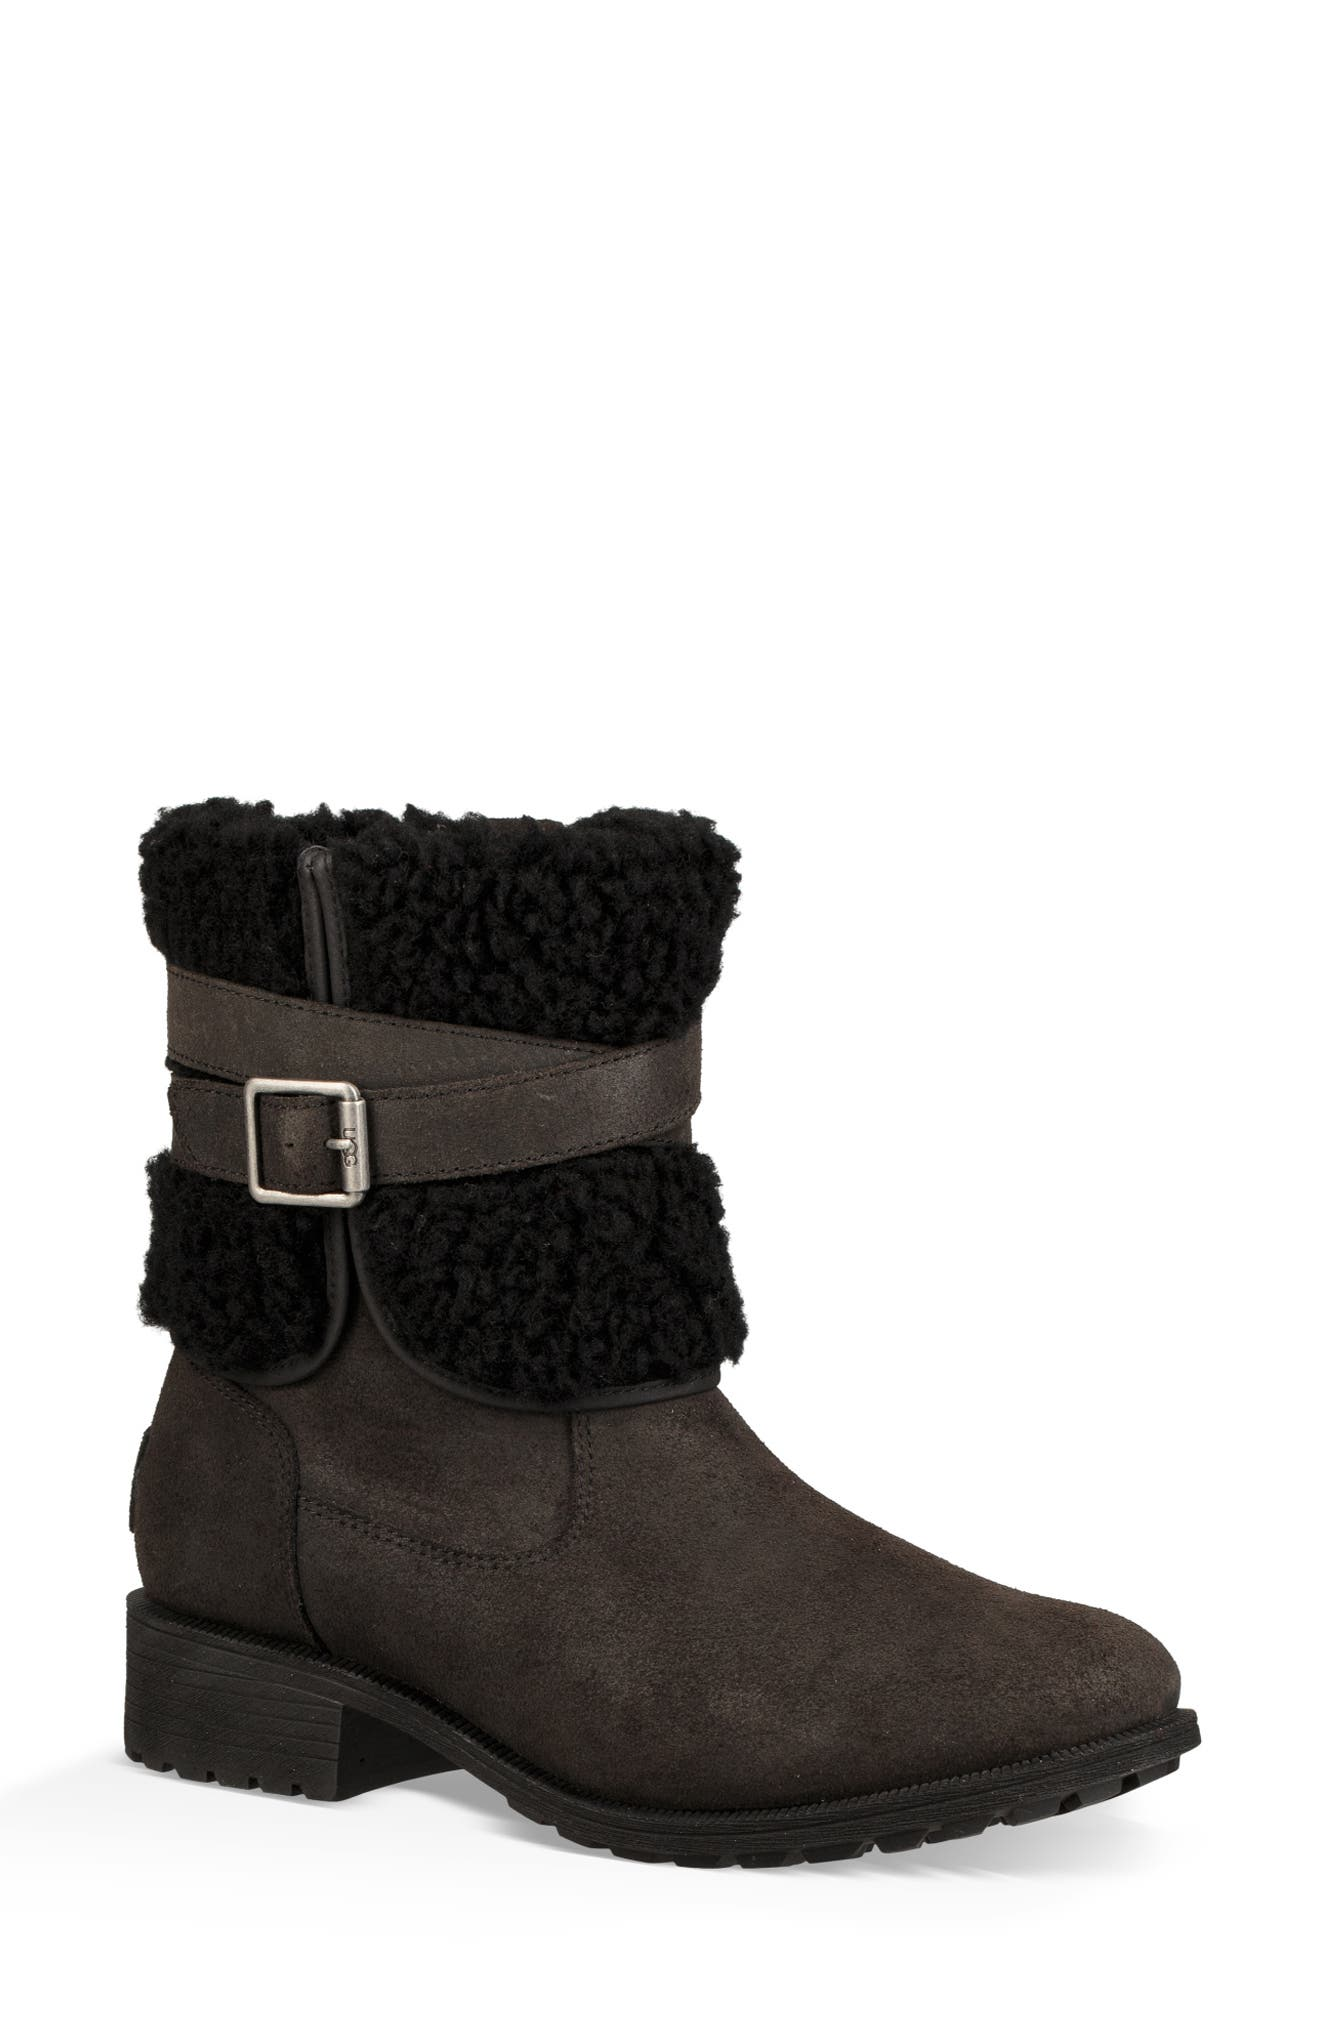 Blayre III Faux Shearling Cuff Bootie,                         Main,                         color, BLACK